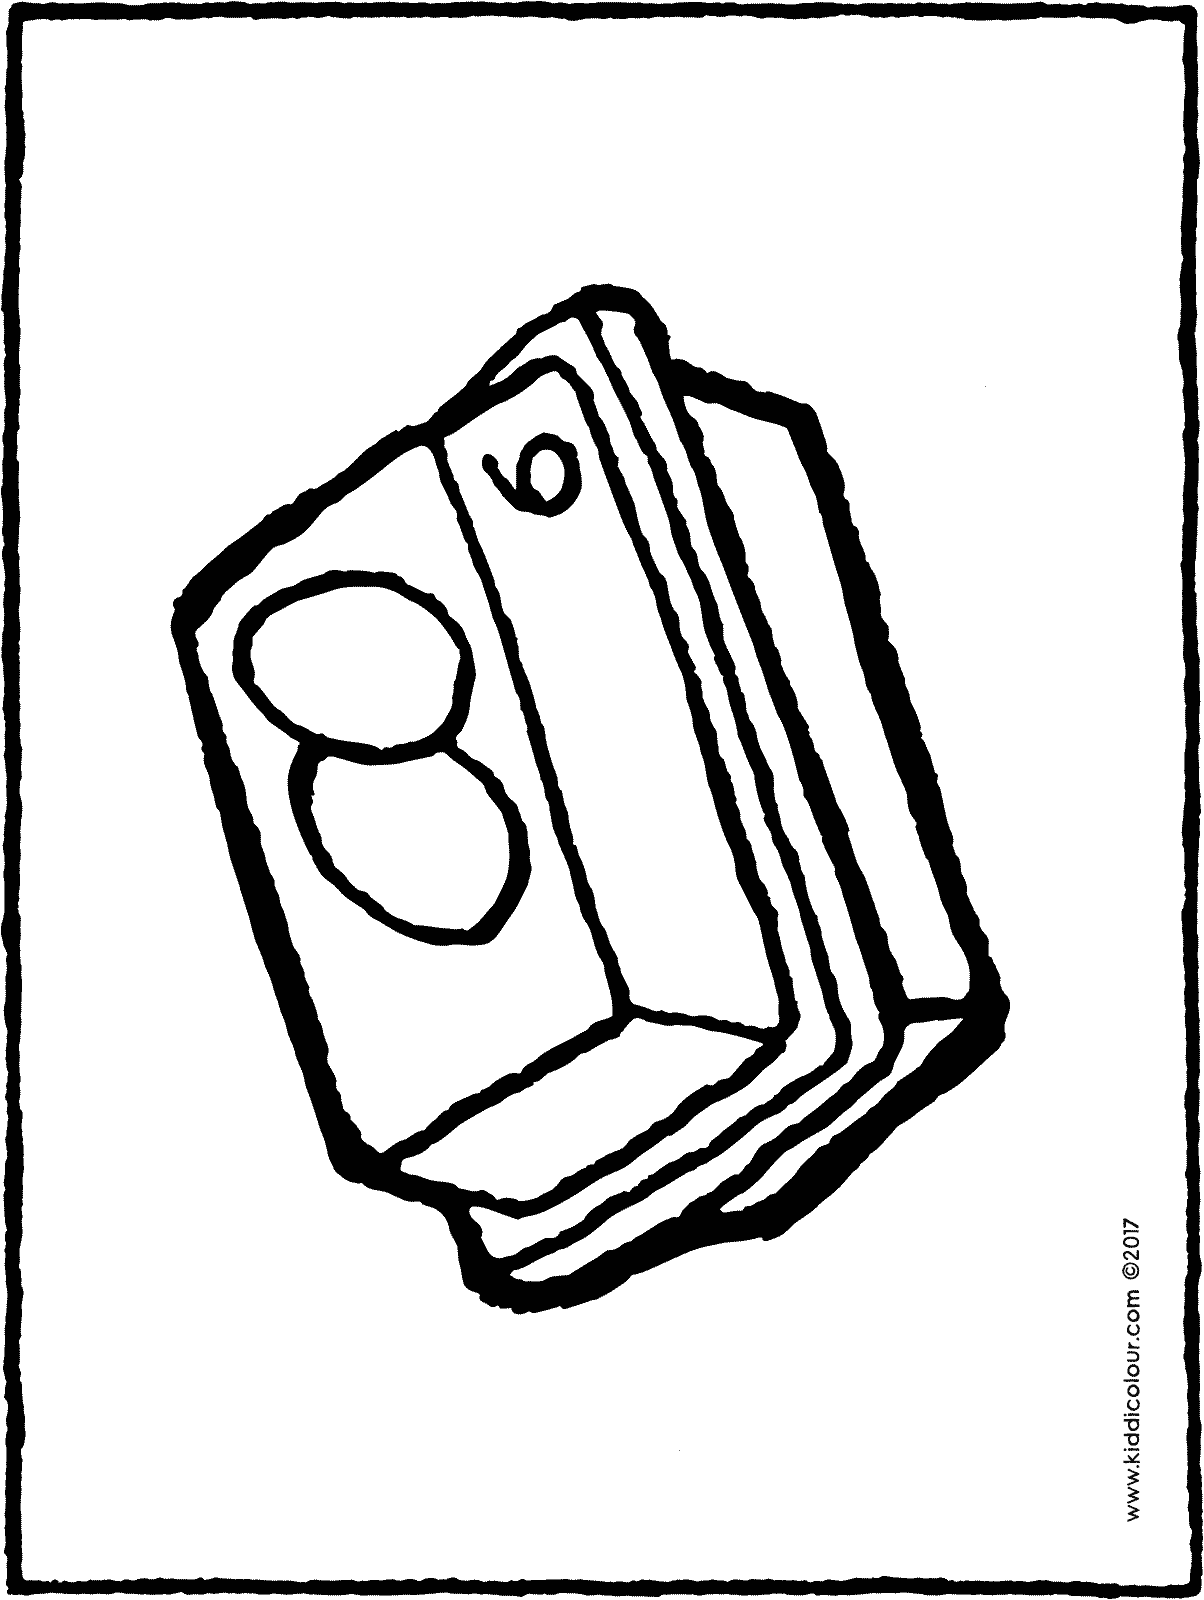 egg box colouring page drawing picture 01H